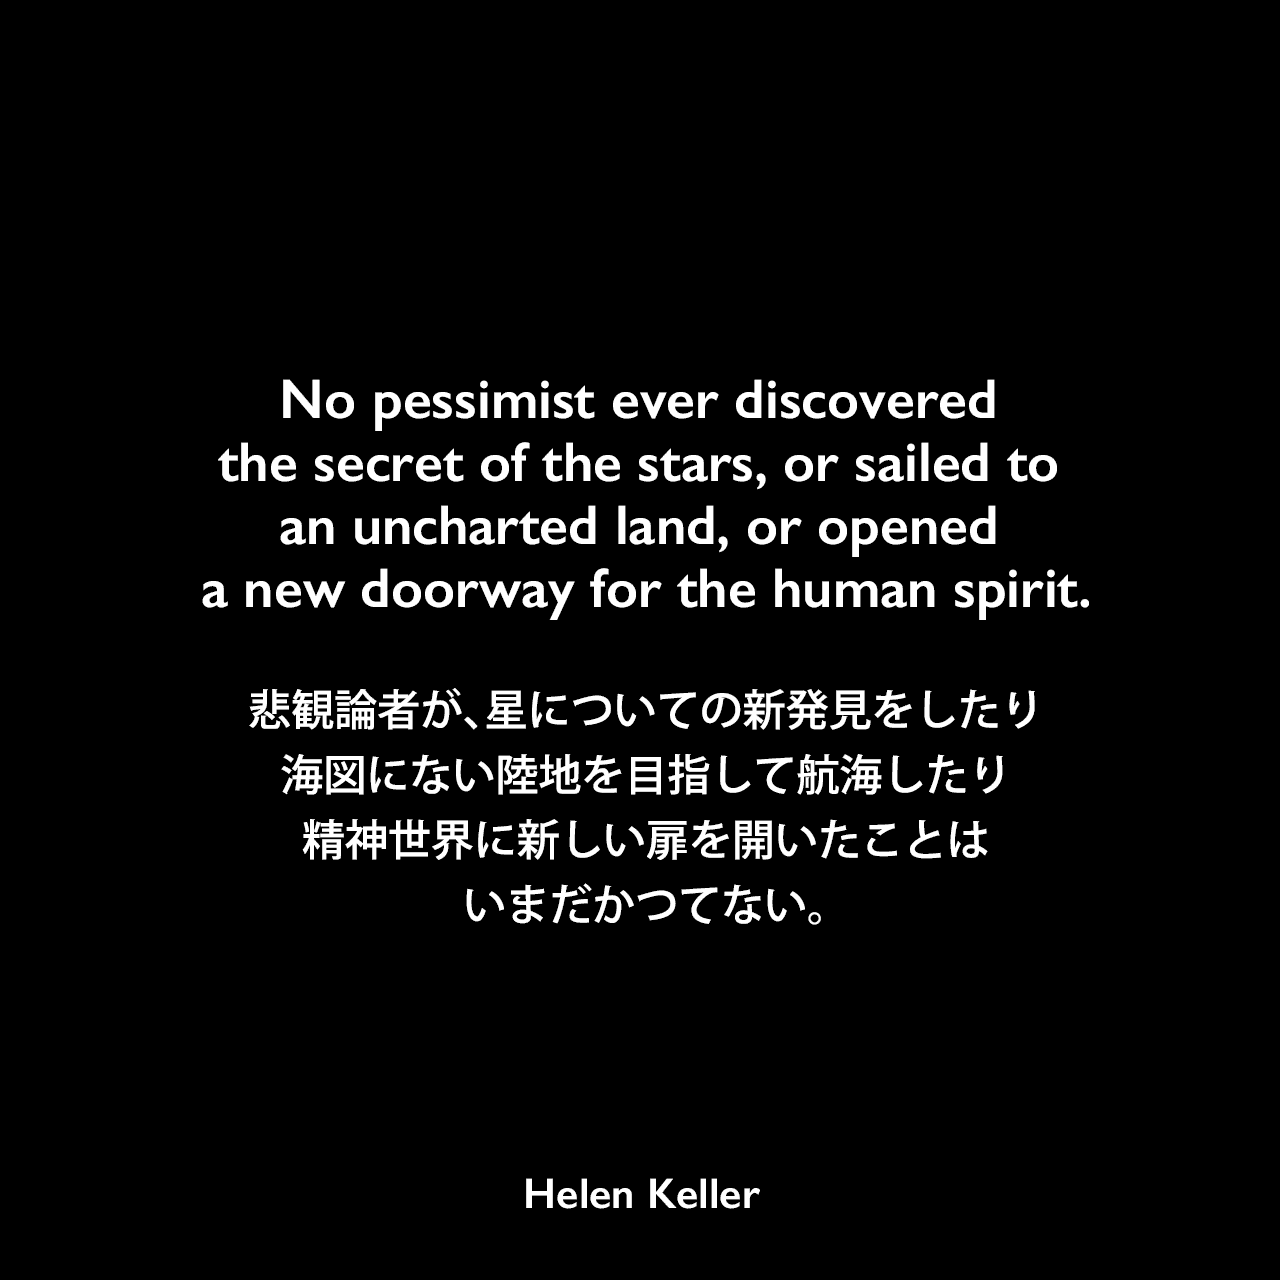 No pessimist ever discovered the secret of the stars, or sailed to an uncharted land, or opened a new doorway for the human spirit.悲観論者が、星についての新発見をしたり、海図にない陸地を目指して航海したり、精神世界に新しい扉を開いたことは、いまだかつてない。Helen Keller